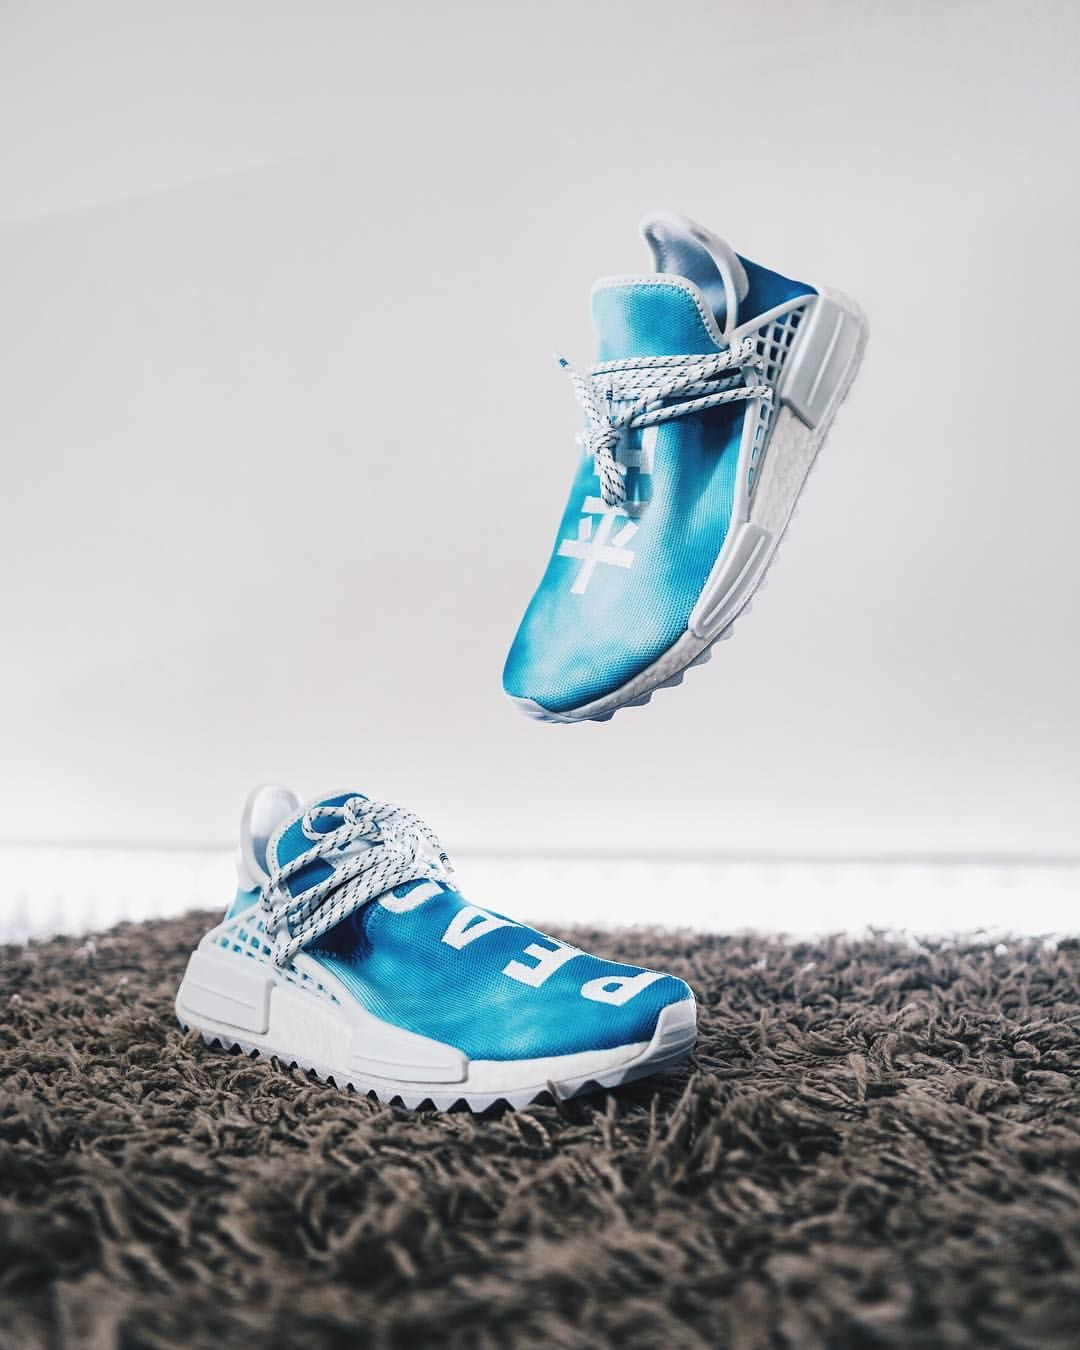 372abc637aab2  Advertisement  - BLUE PEACE 💎 Next pair out of the China Pack is here! My  blue  adidas de Human Race is pure 🔥!